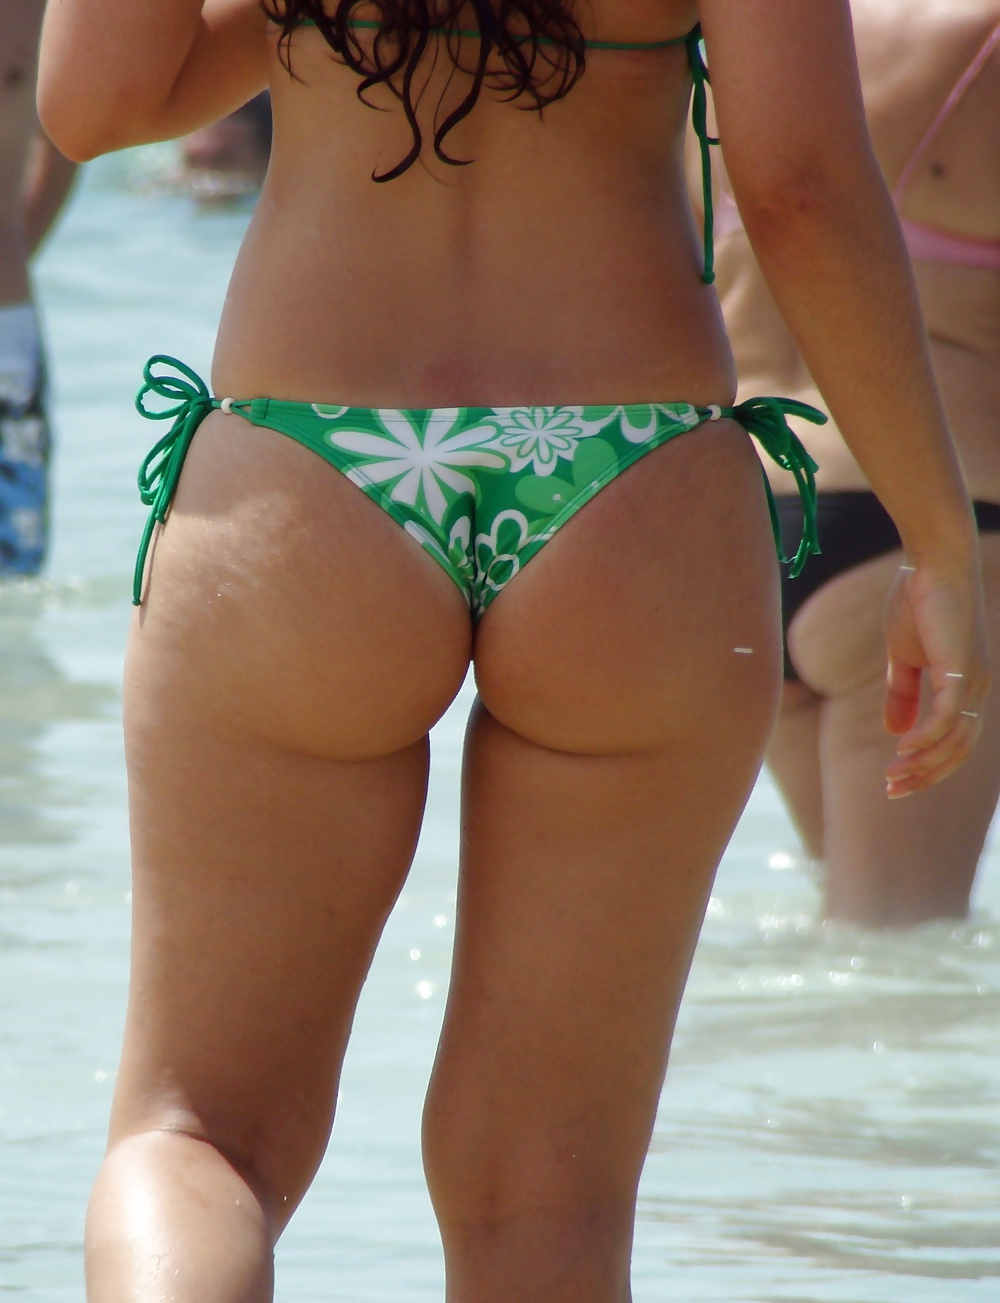 little-bubble-butt-bikini-pics-plesure-pornxxx-celebrity